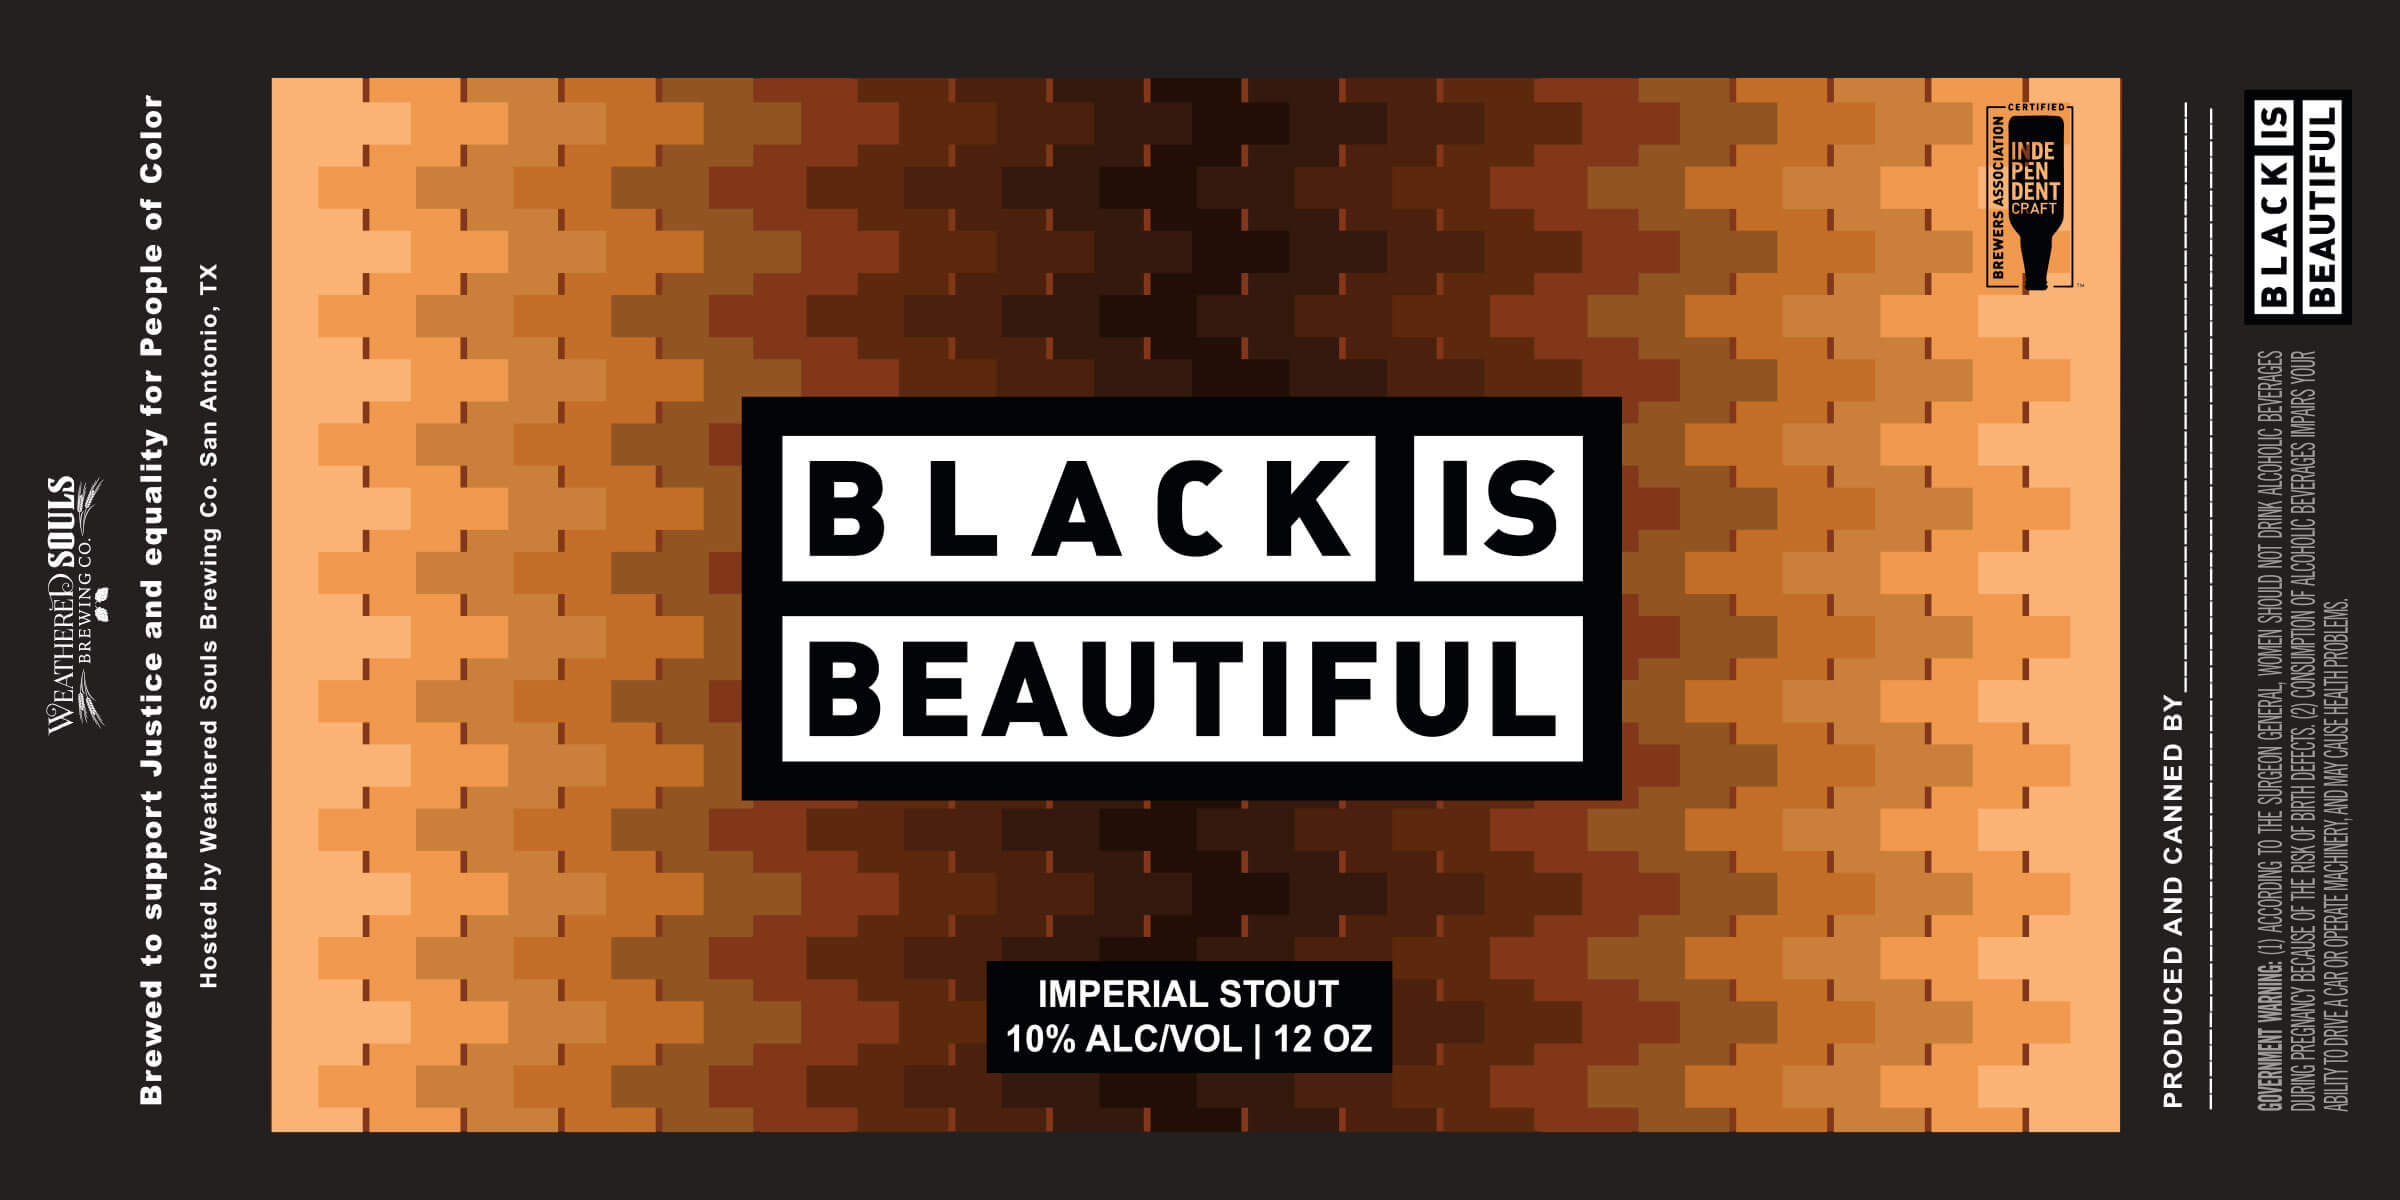 Label deisgn for cans of the Black is Beautiful global beer collaboration.